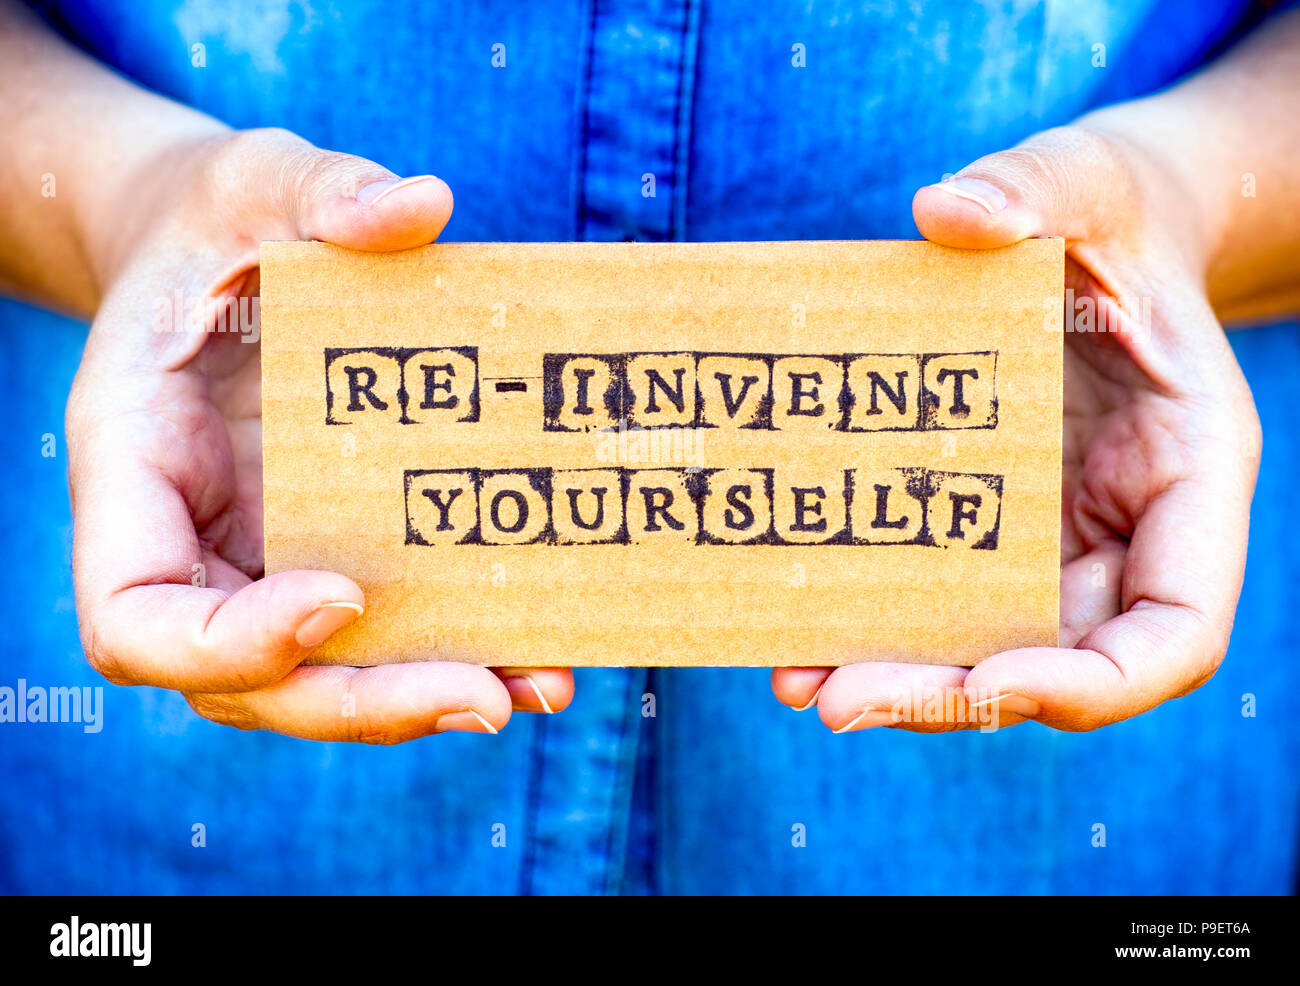 Woman hand holding cardboard card with words Re-Invent Yourself made by black alphabet stamps. Denim backgrounds. - Stock Image